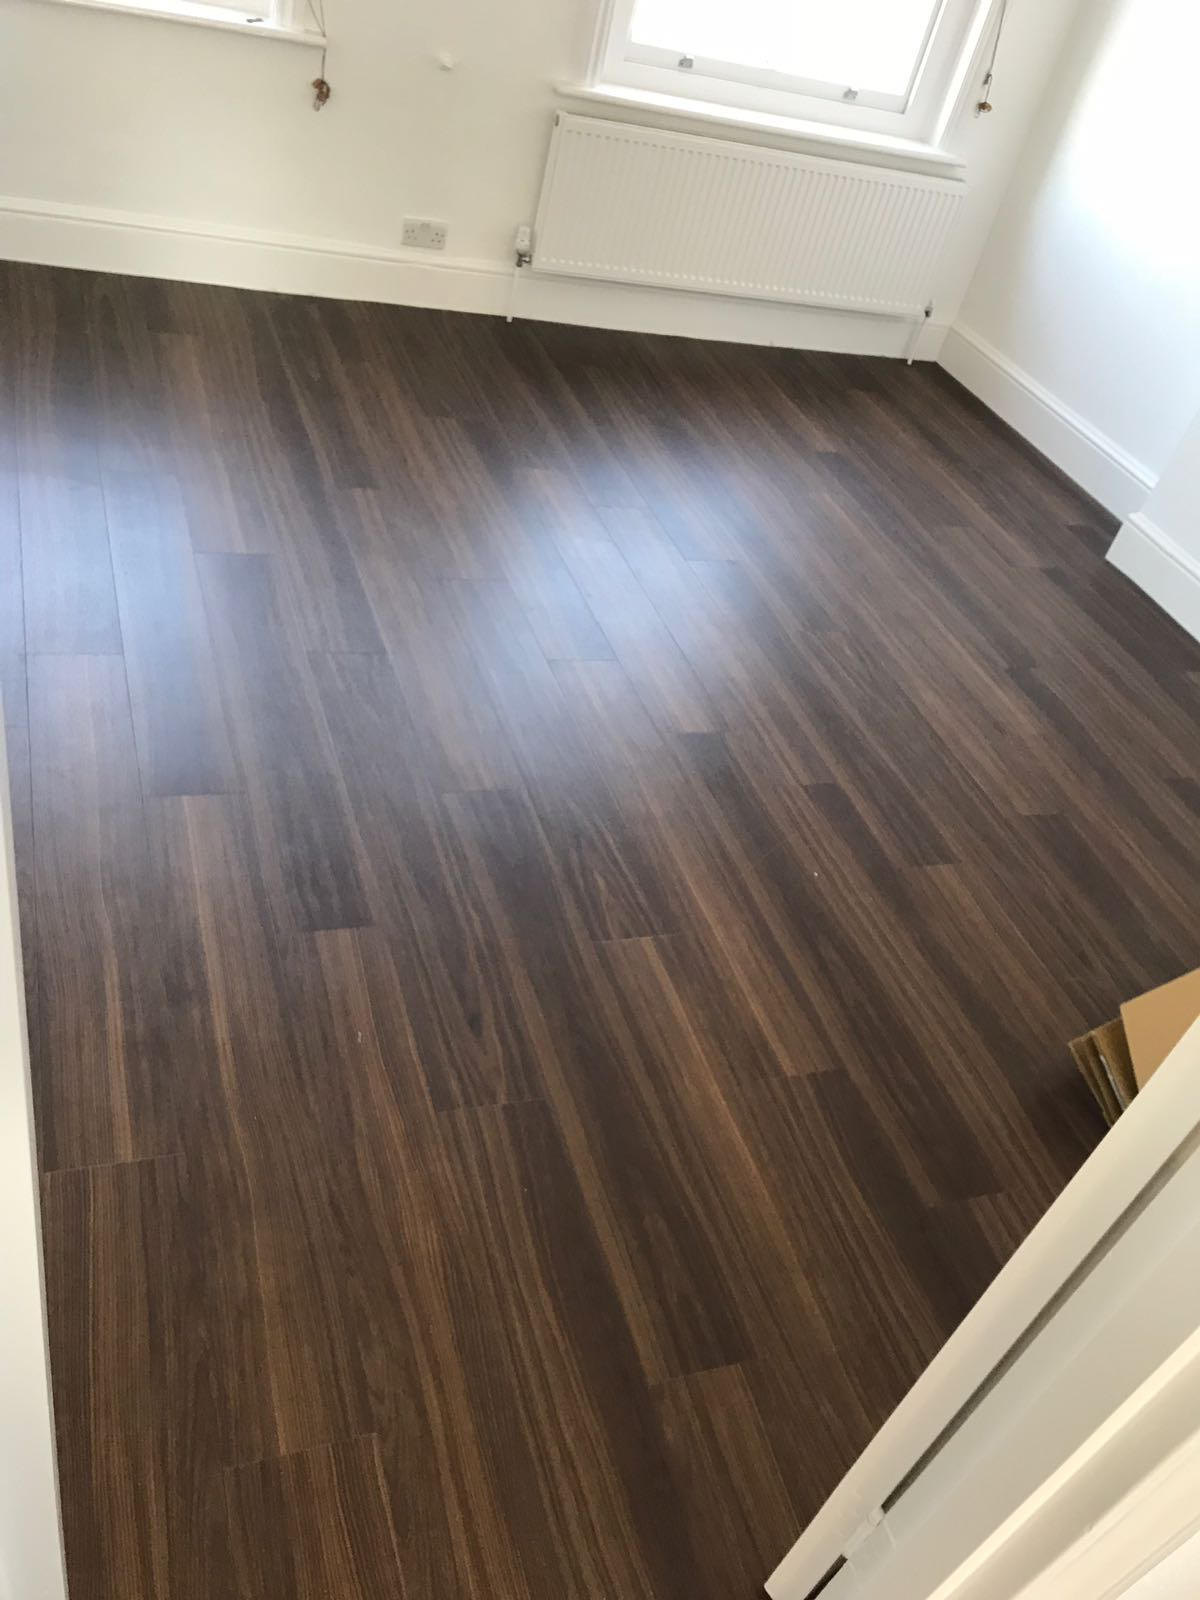 2018-04-24_Amtico Flooring Installed In Chelsea Residence (9)